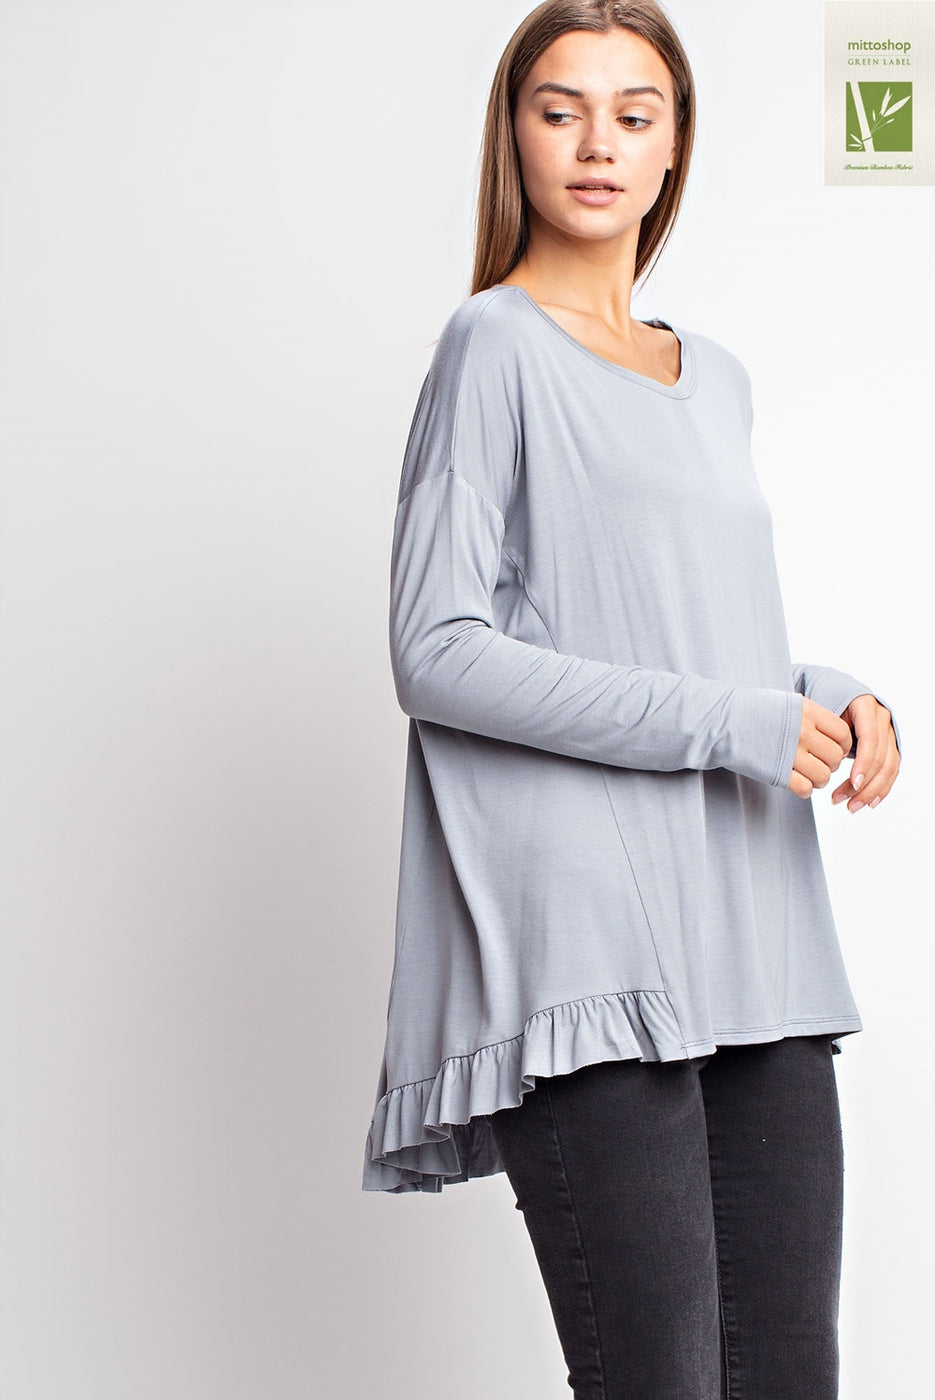 Blue Grass Bamboo Ruffled Hem Top